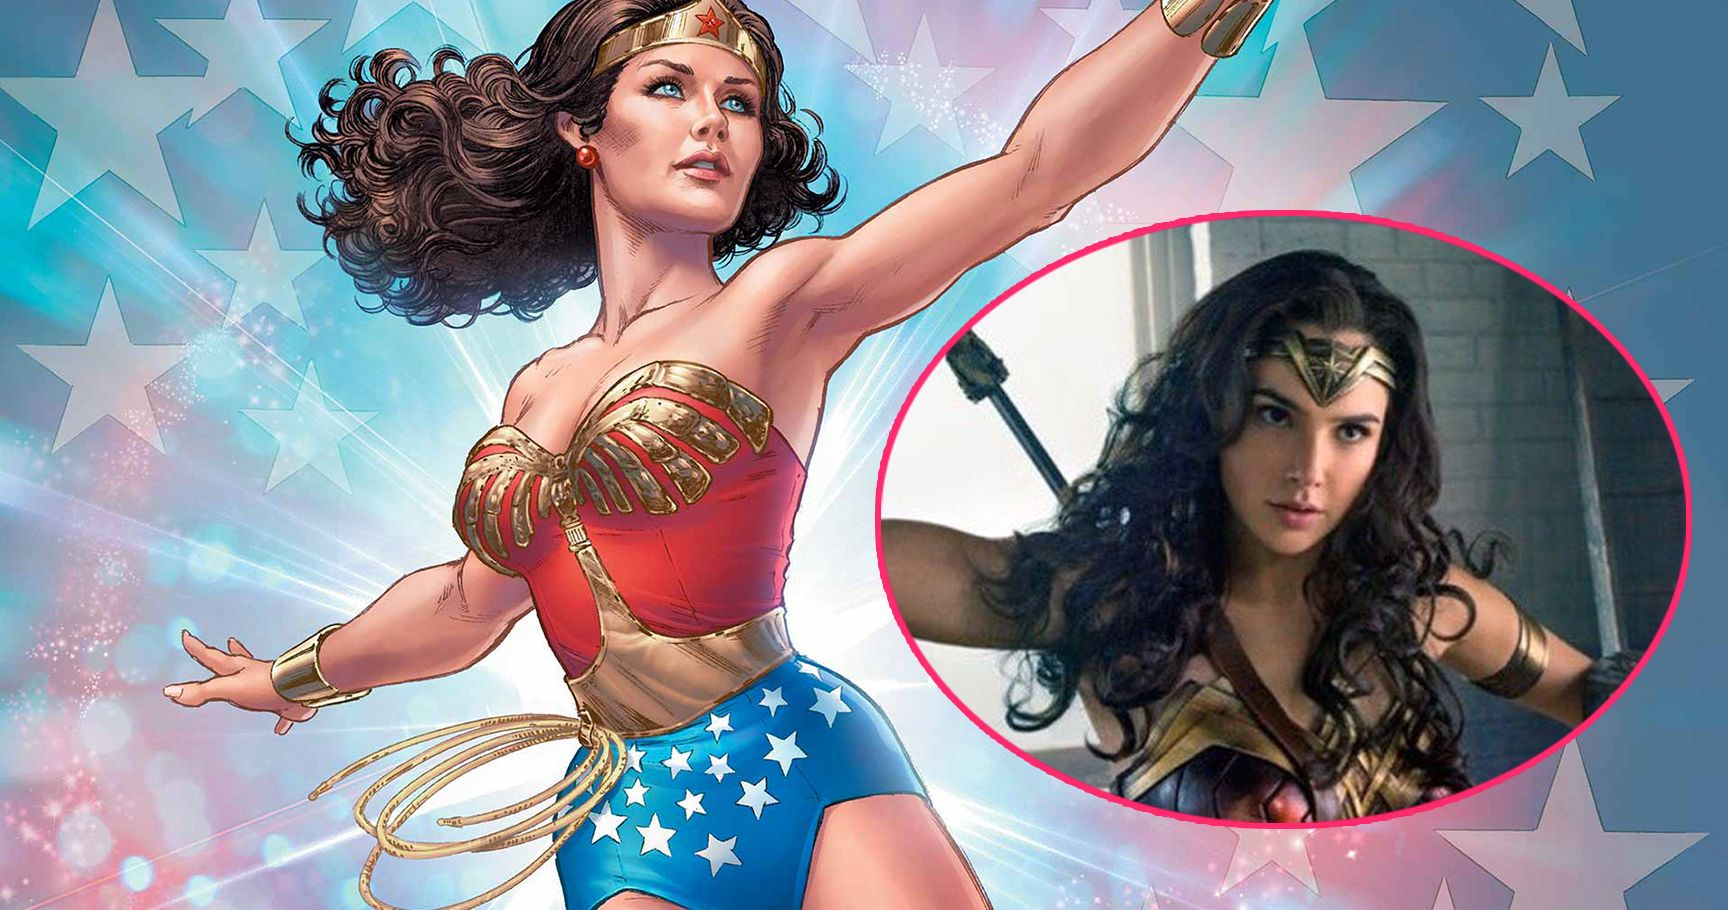 15 Surprising Things Most People Don't Know About Wonder Woman